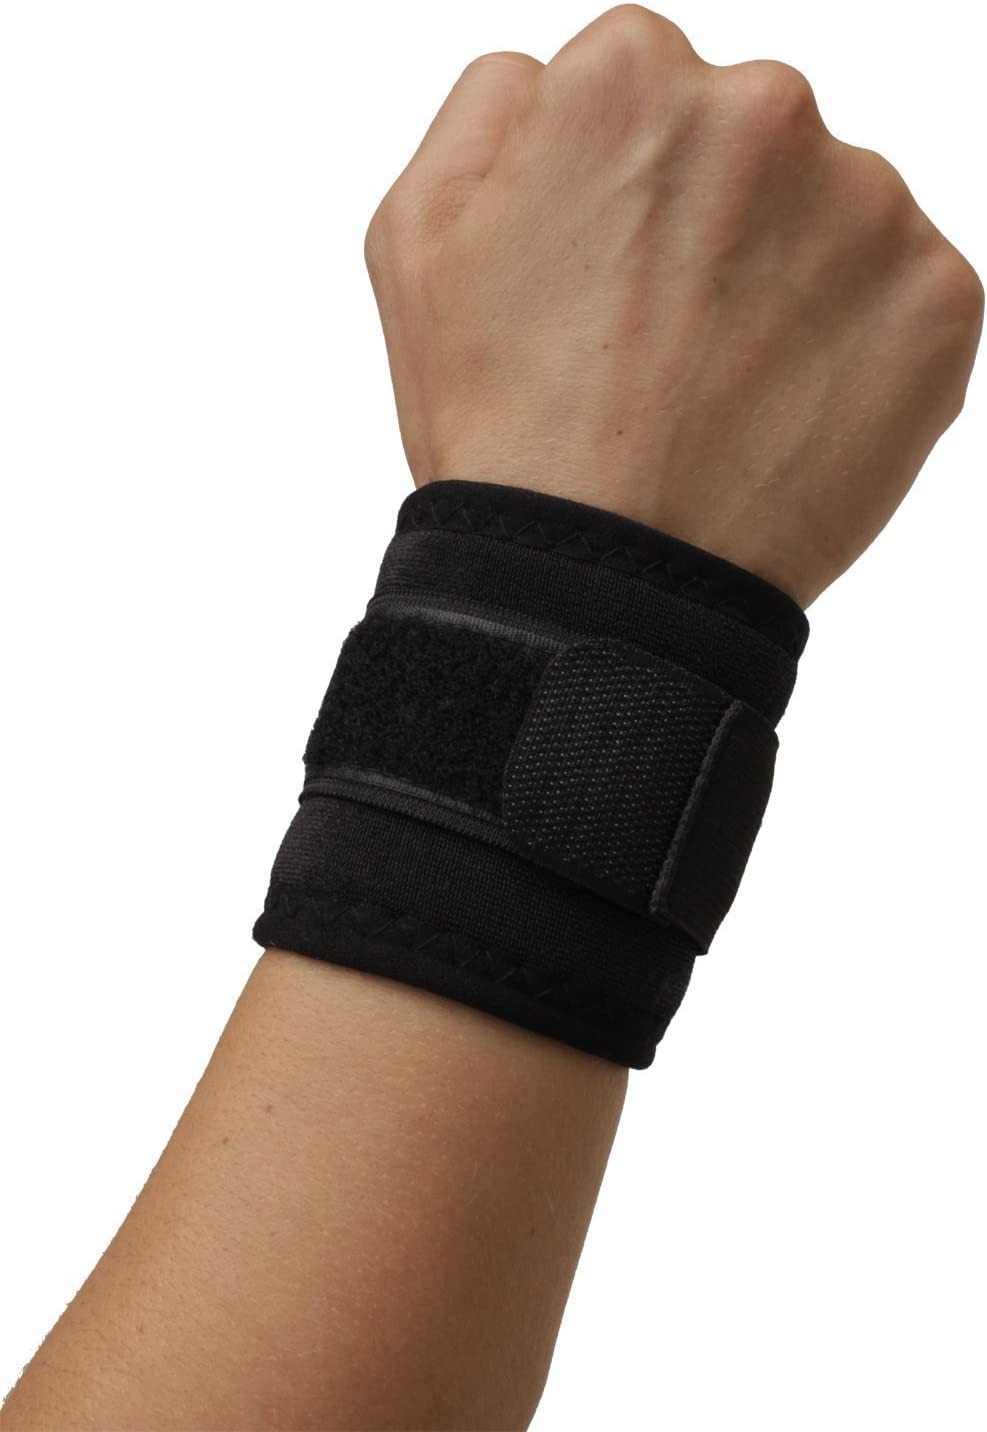 Wrist Support - Dual Magnetic & Tourmaline Technology - Self-Warming - Adjustable Fit